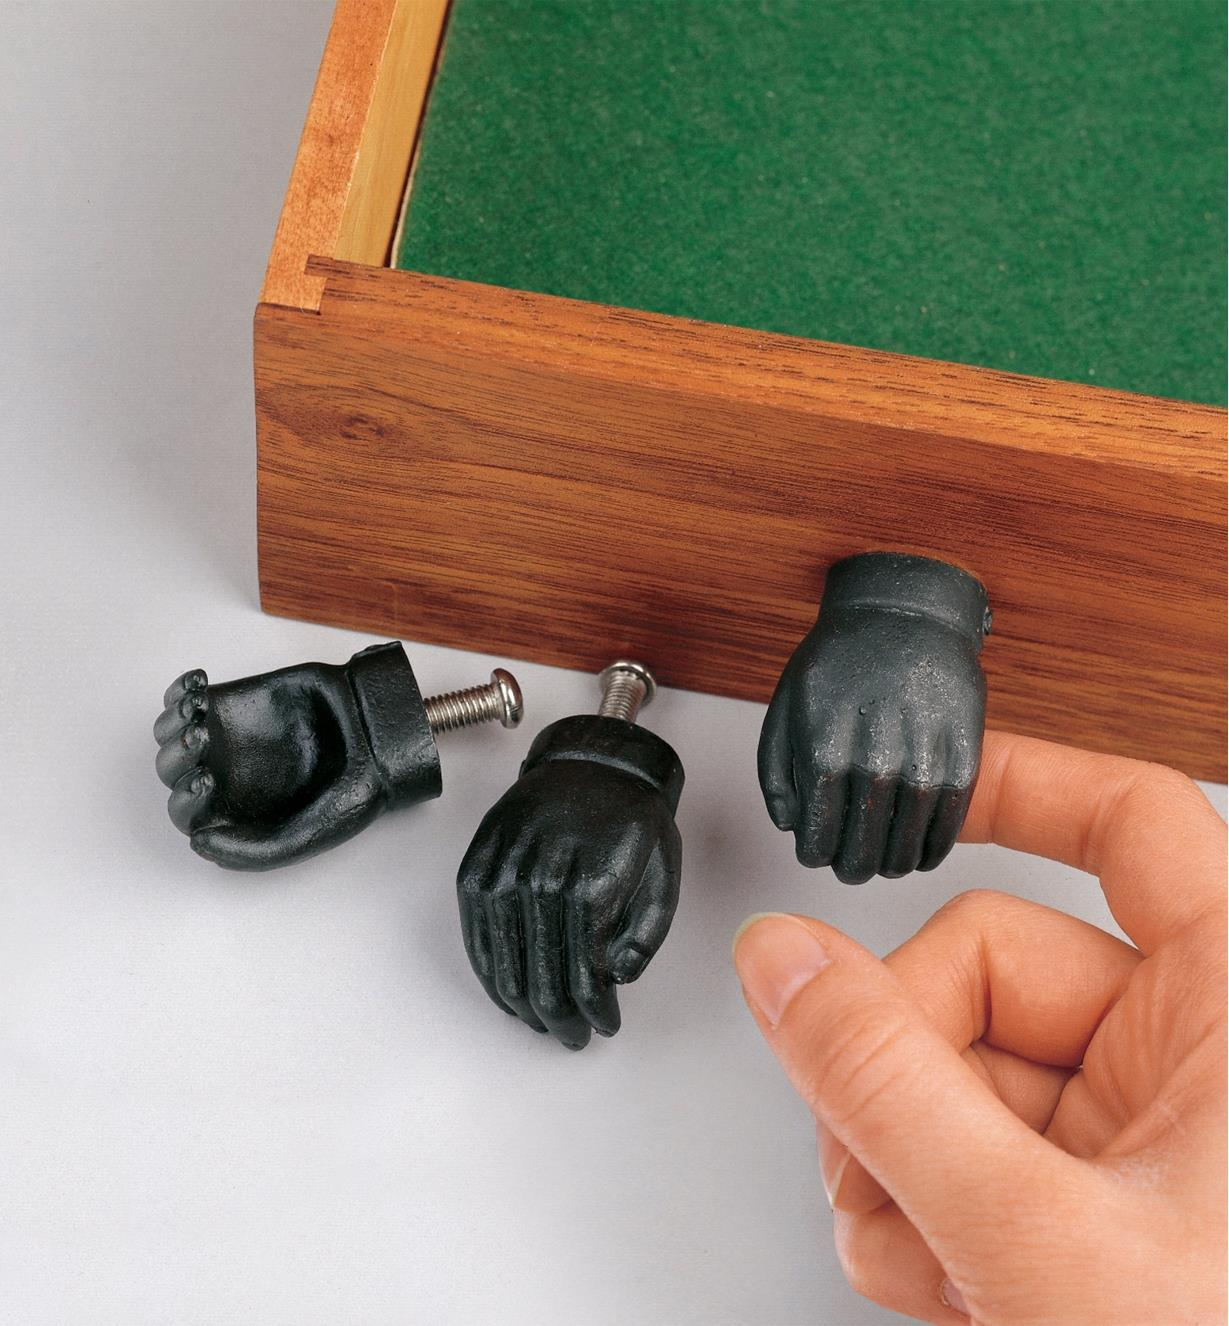 01K3310 - Hands, pair (left & right)